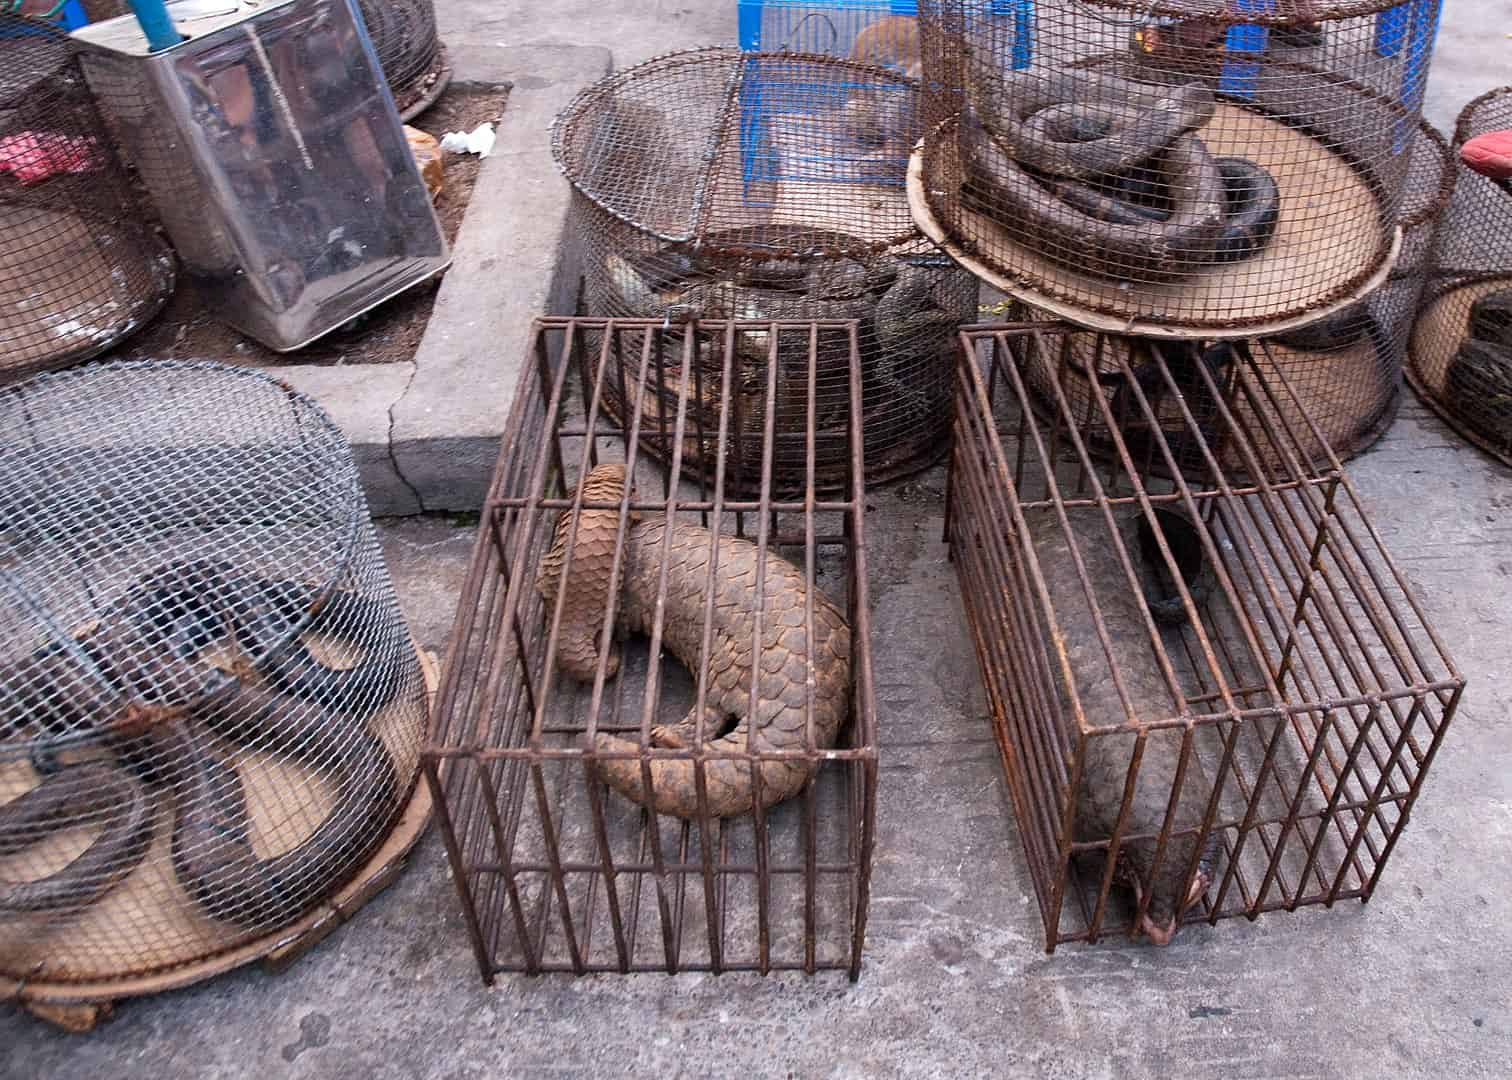 Pangolins cages awaiting to be sold illegally, pangolin facts